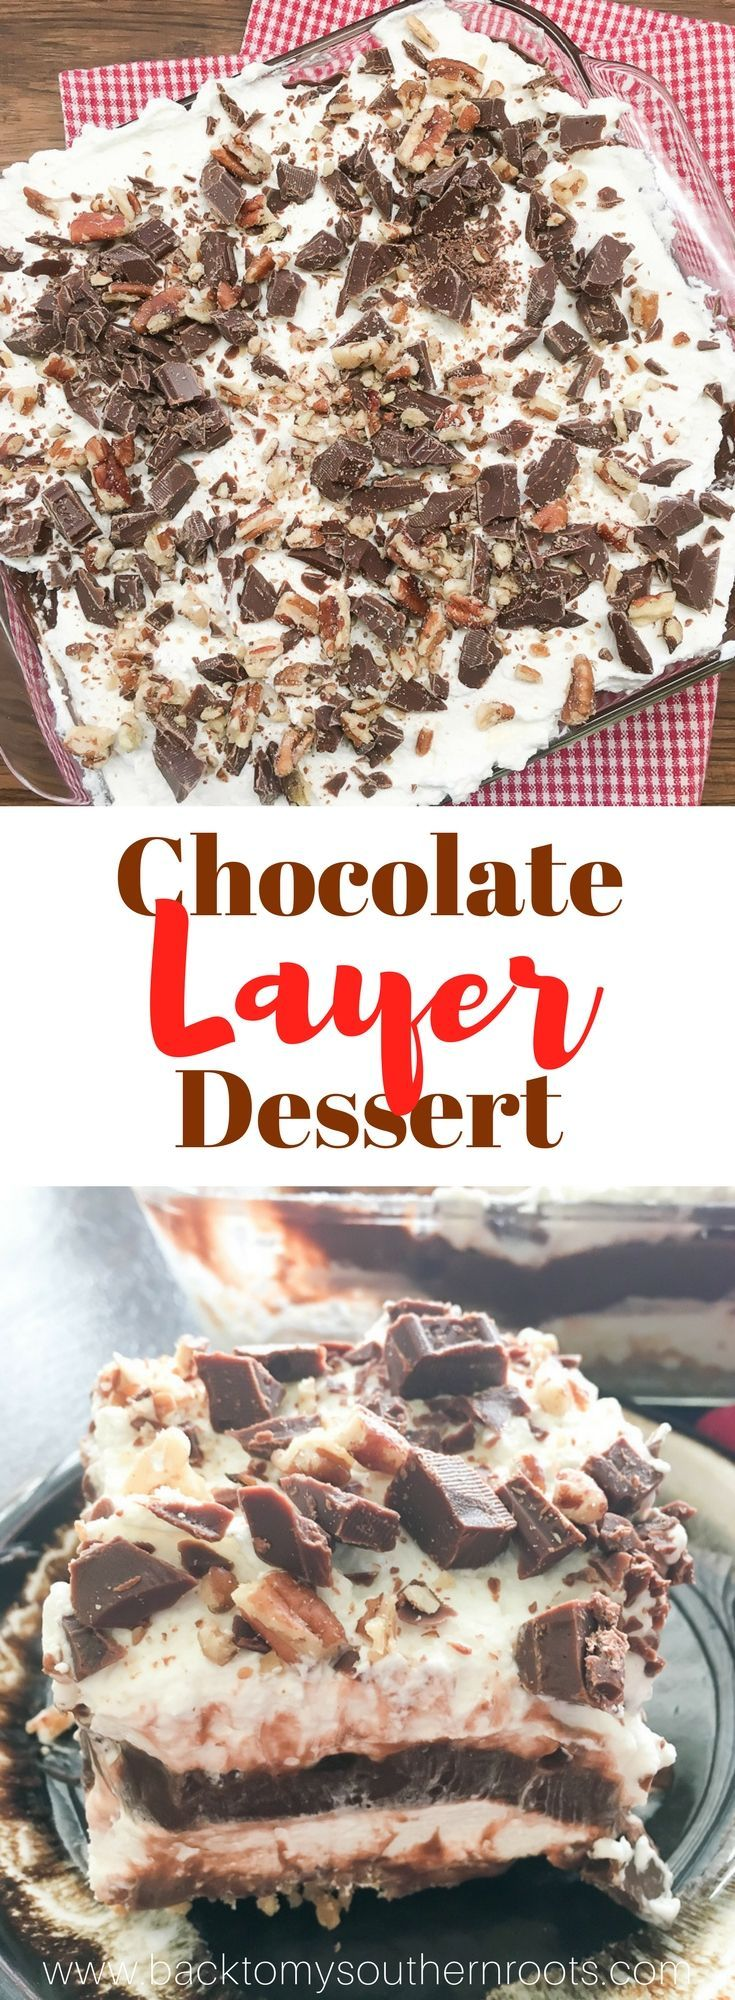 Chocolate layer dessert with a graham cracker crust, homemade whipped cream, chocolate pudding, and cream cheese is a delicious recipe. The easy recipe is the perfect dish for a party, the holidays, or for dessert at home. #chocolate #layer #dessert #creamcheeses #whippedtopping #whippedcream #grahamcrackers #pecans #puddings #easy #sweettreats